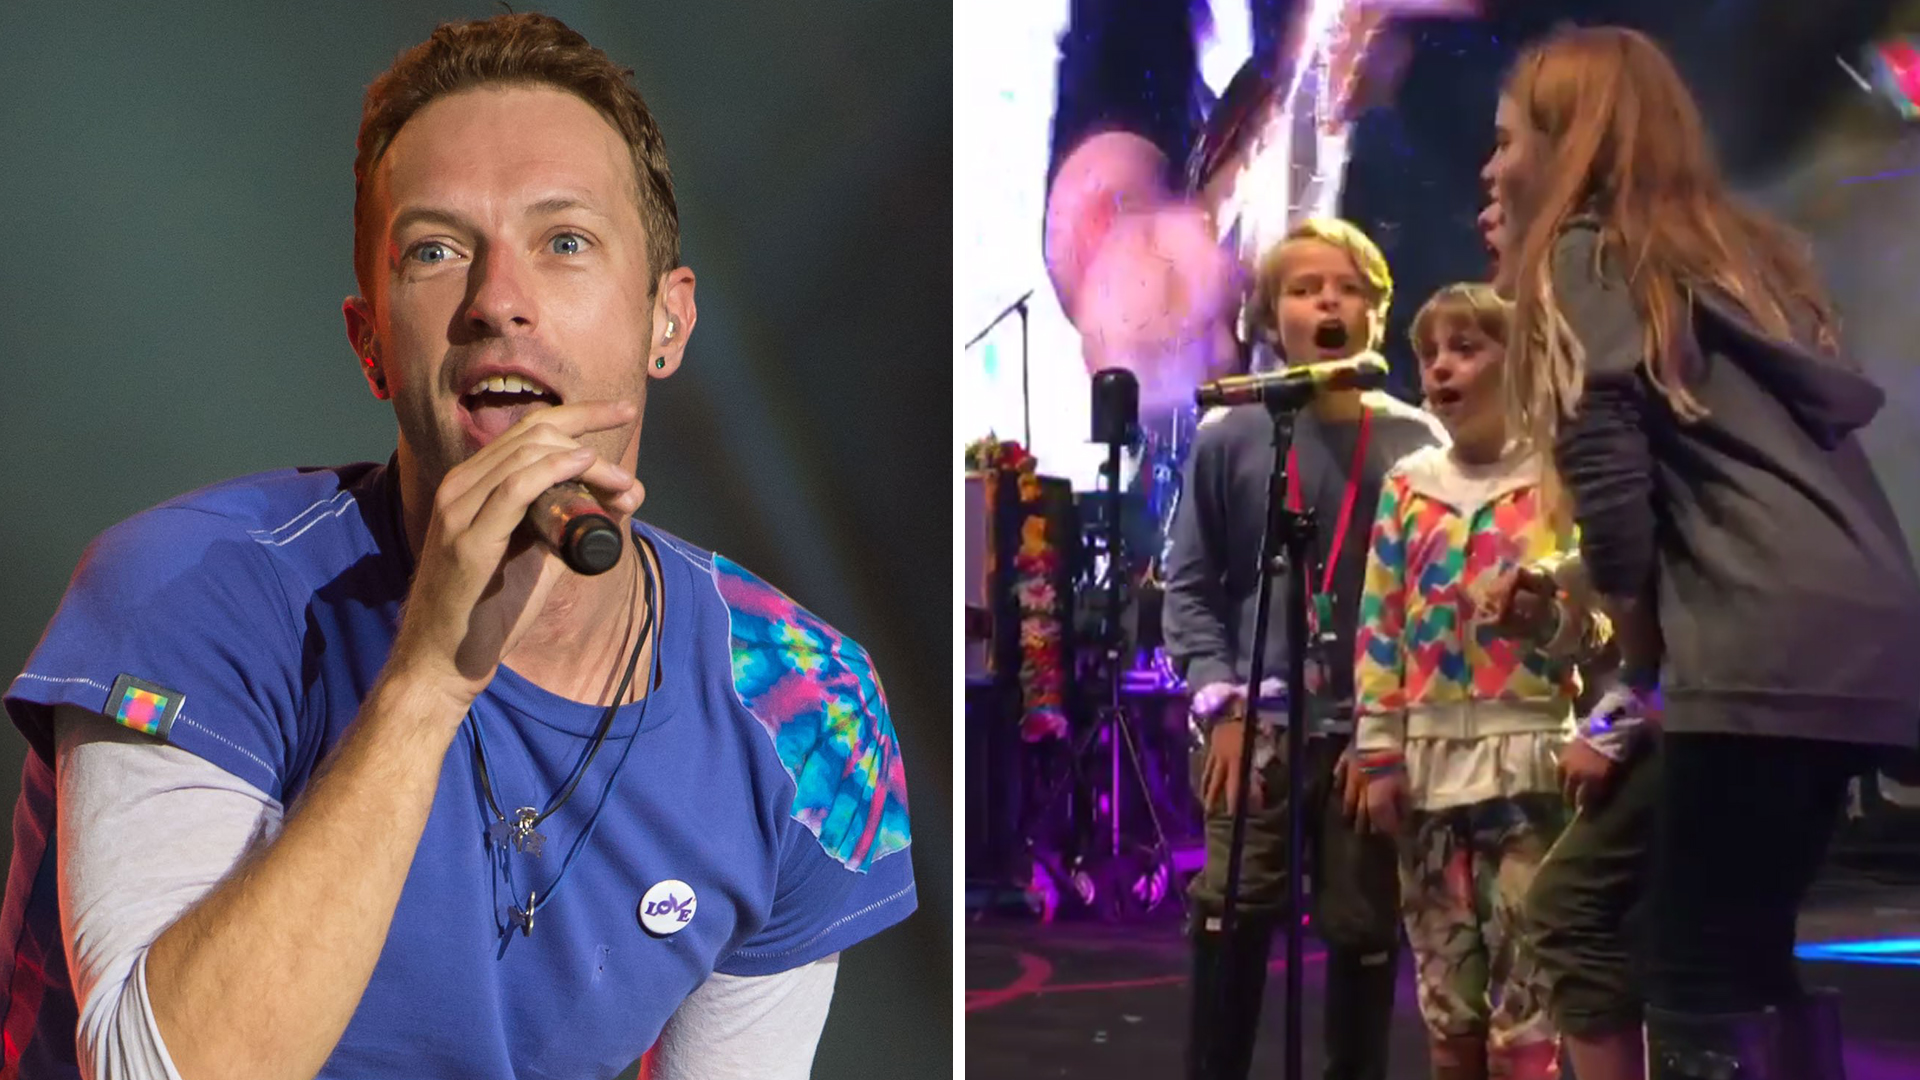 All In The Family See Chris Martin S Kids Apple Moses